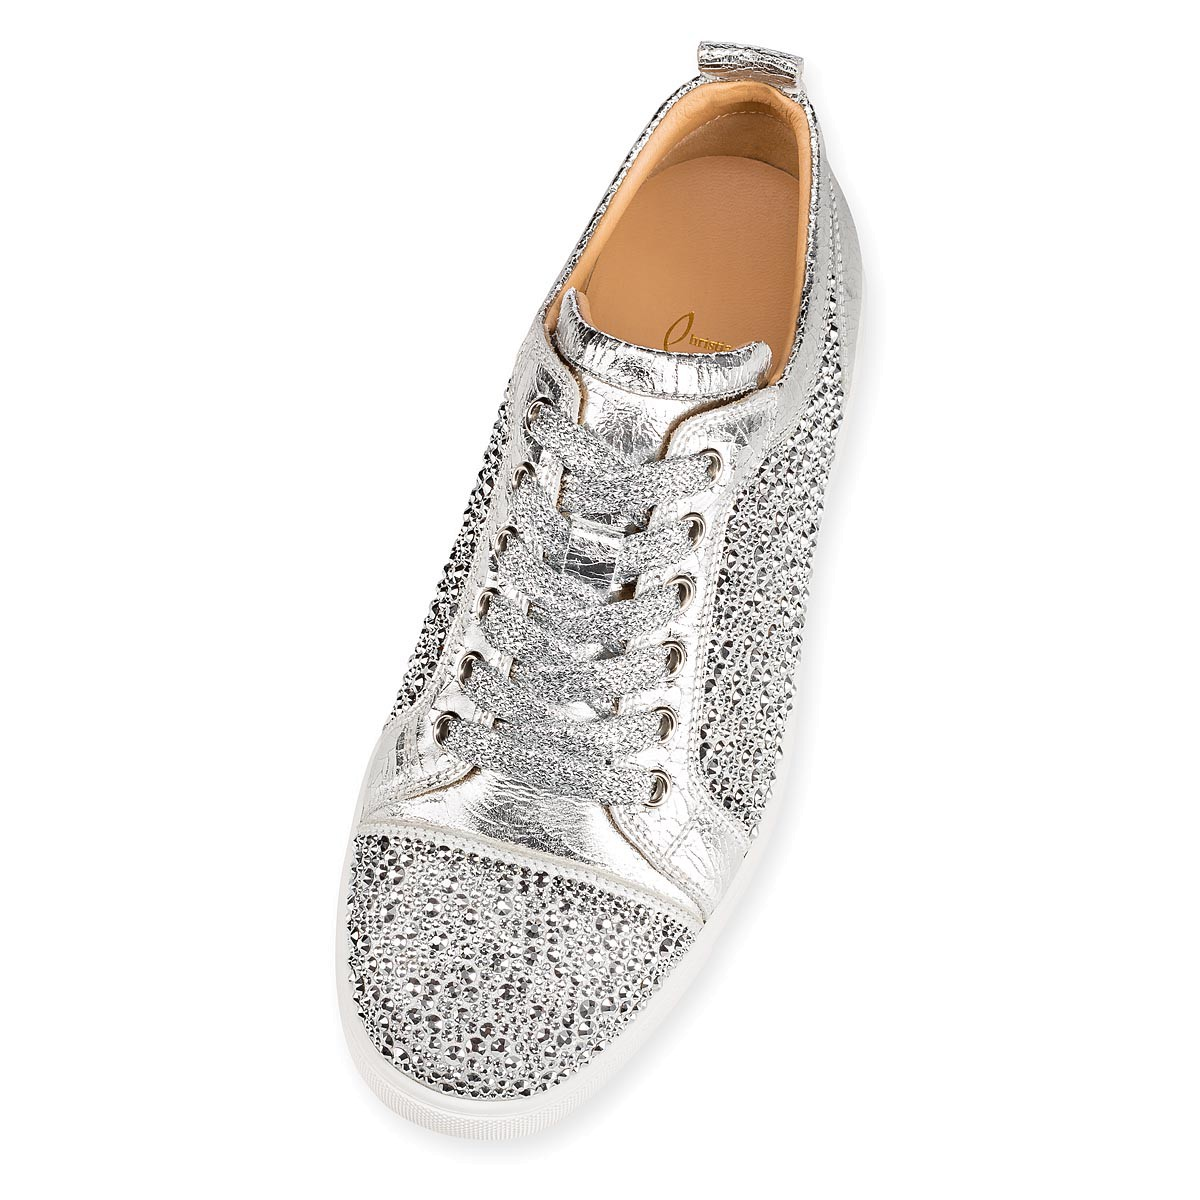 鞋履 - Louis Junior Strass Woman Flat - Christian Louboutin